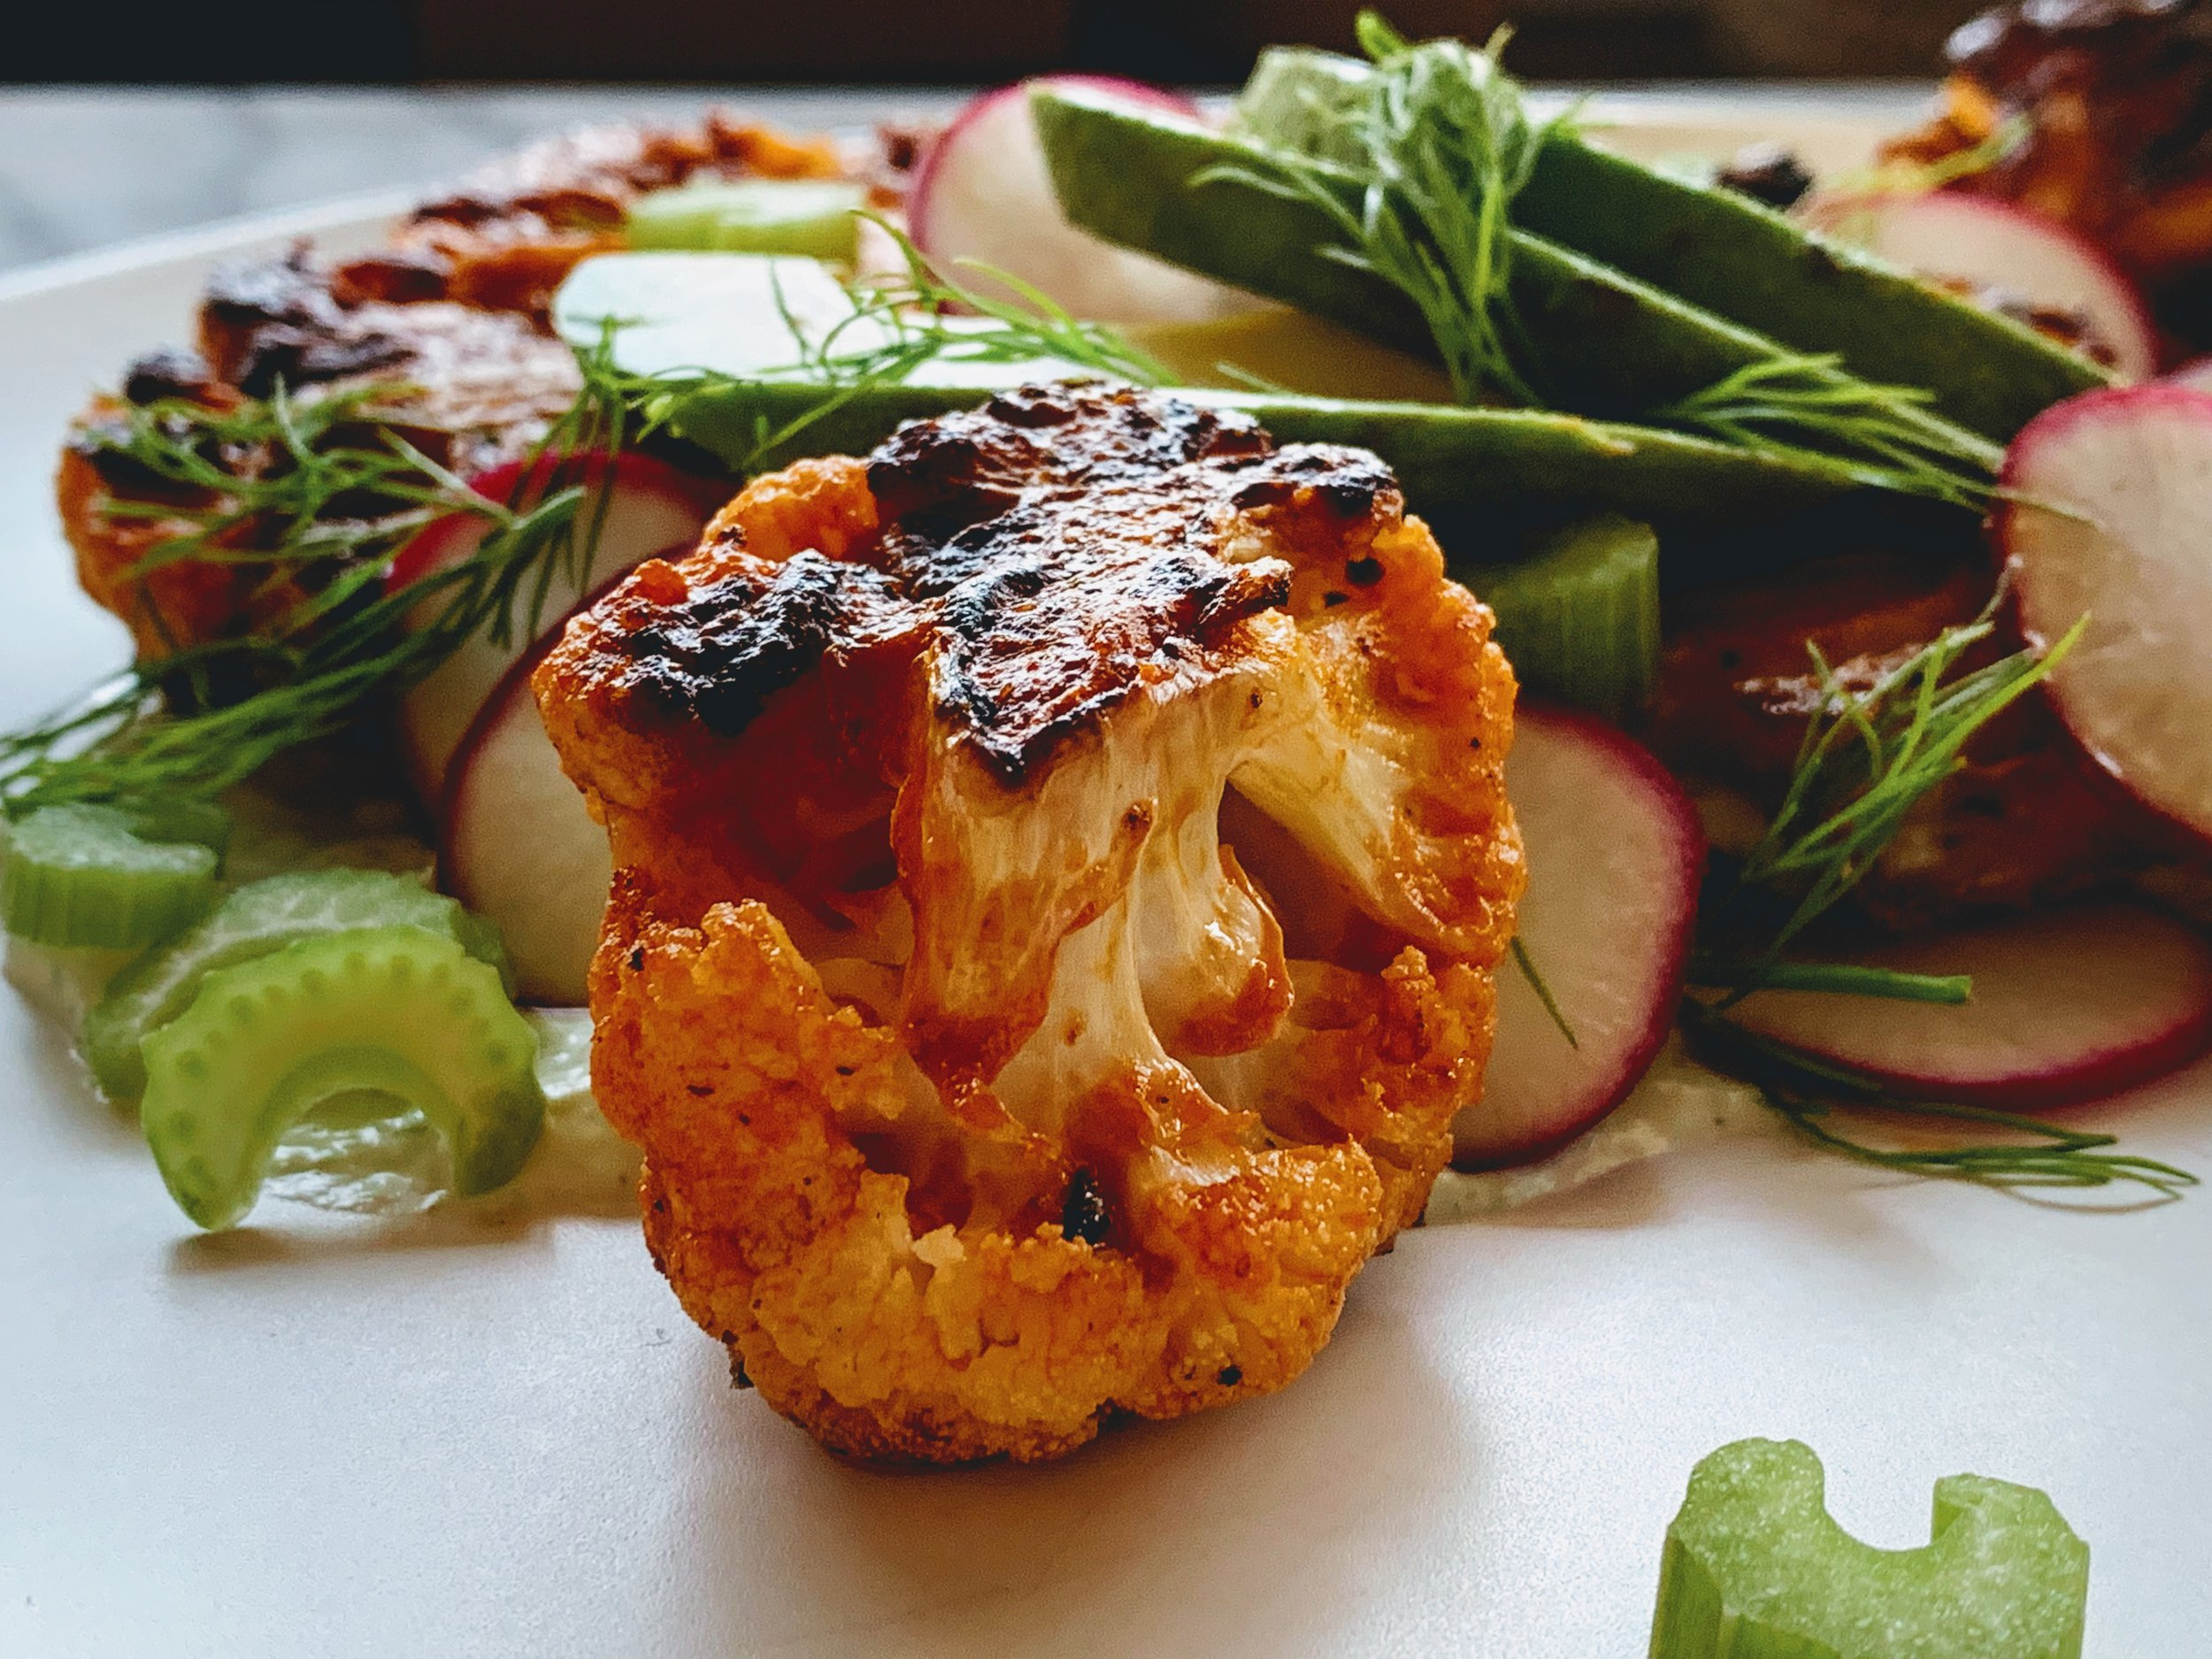 Buffalo Cauliflower Steaks with Whipped Goat Cheese Up Close.jpg